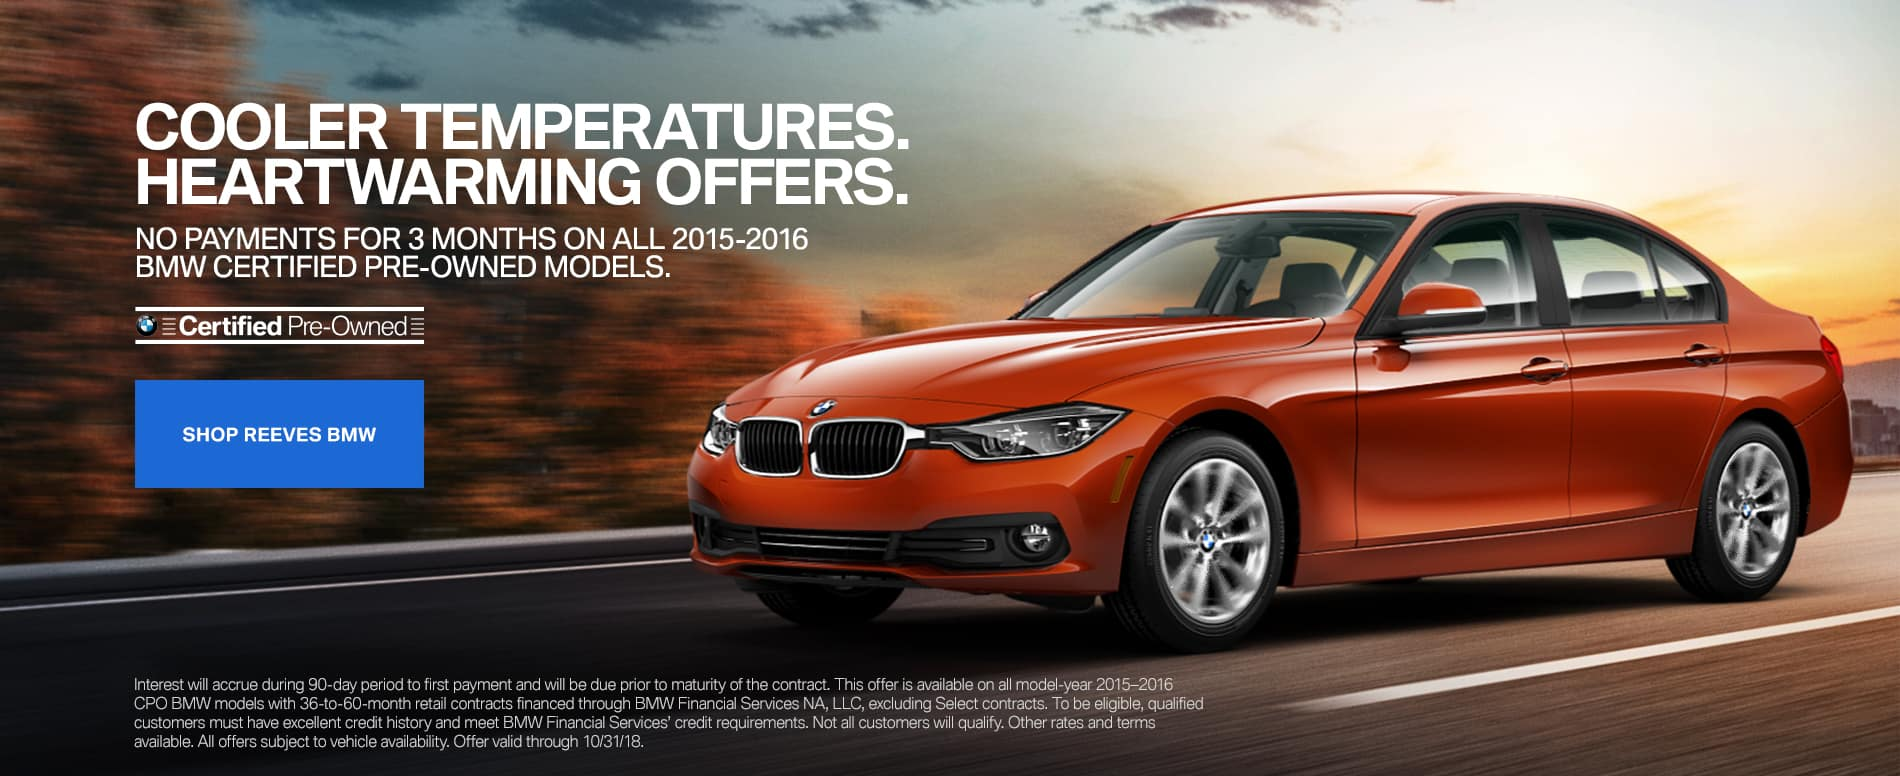 BMW CPO September Offer